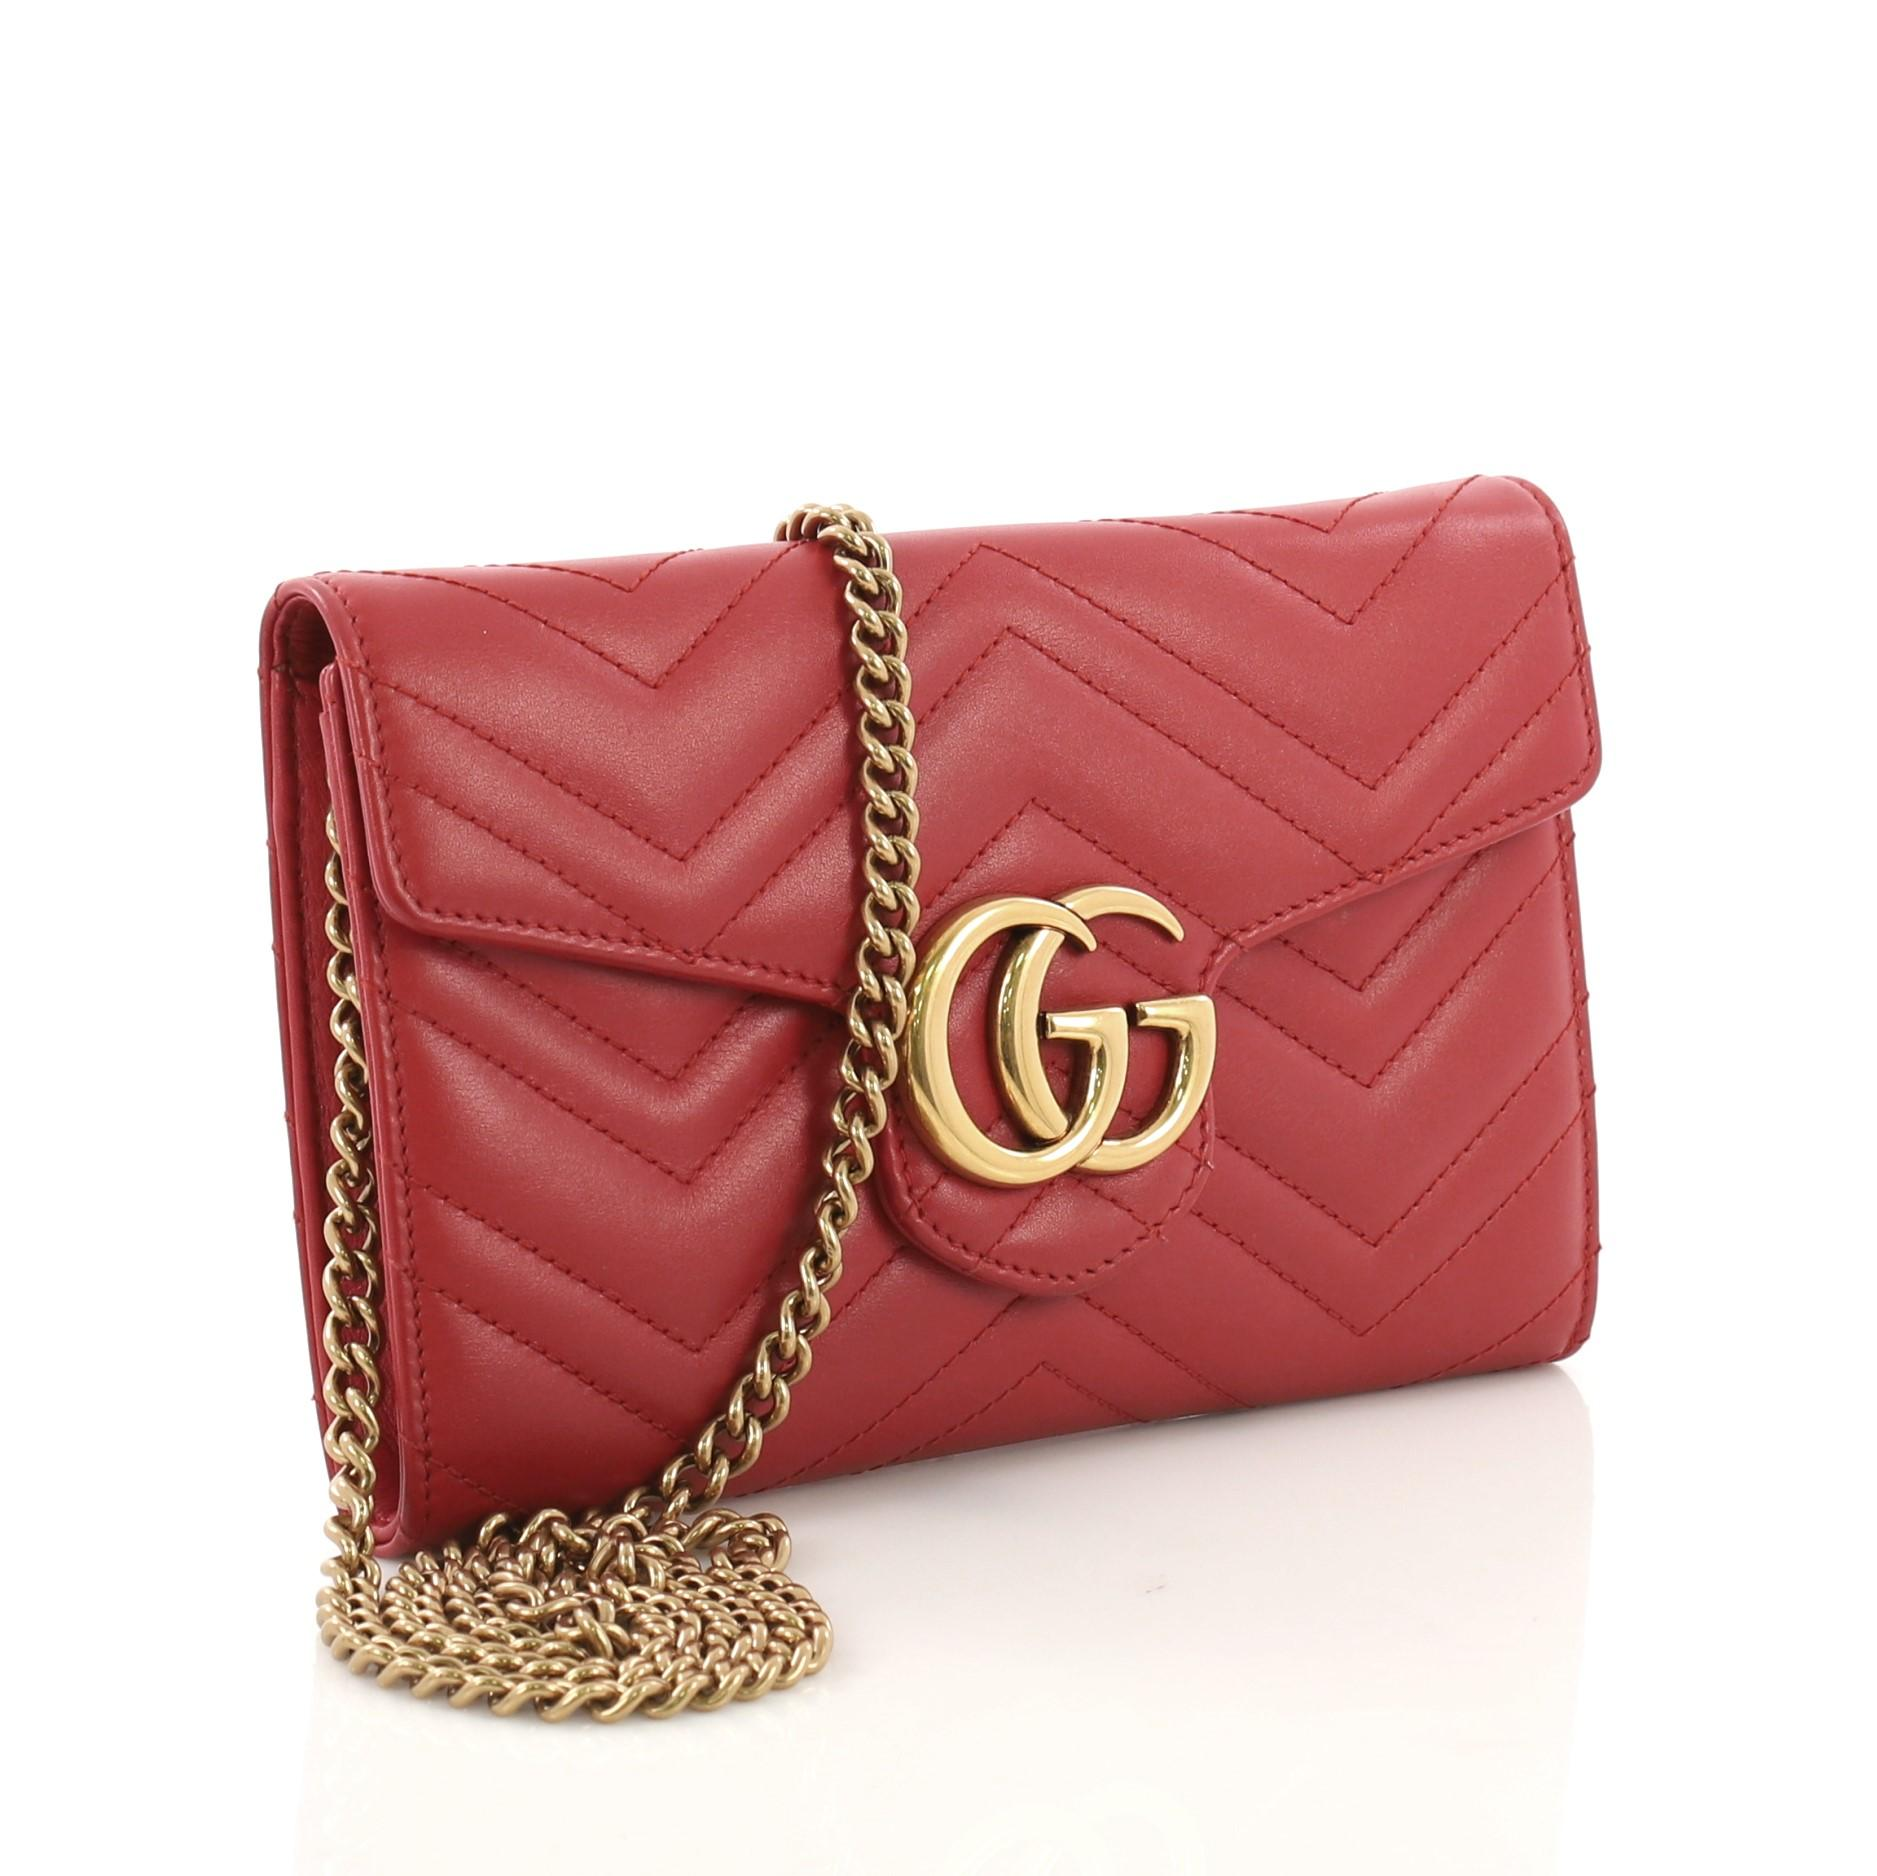 9af1cbfbb85d Gucci GG Marmont Chain Wallet Matelasse Leather Mini at 1stdibs